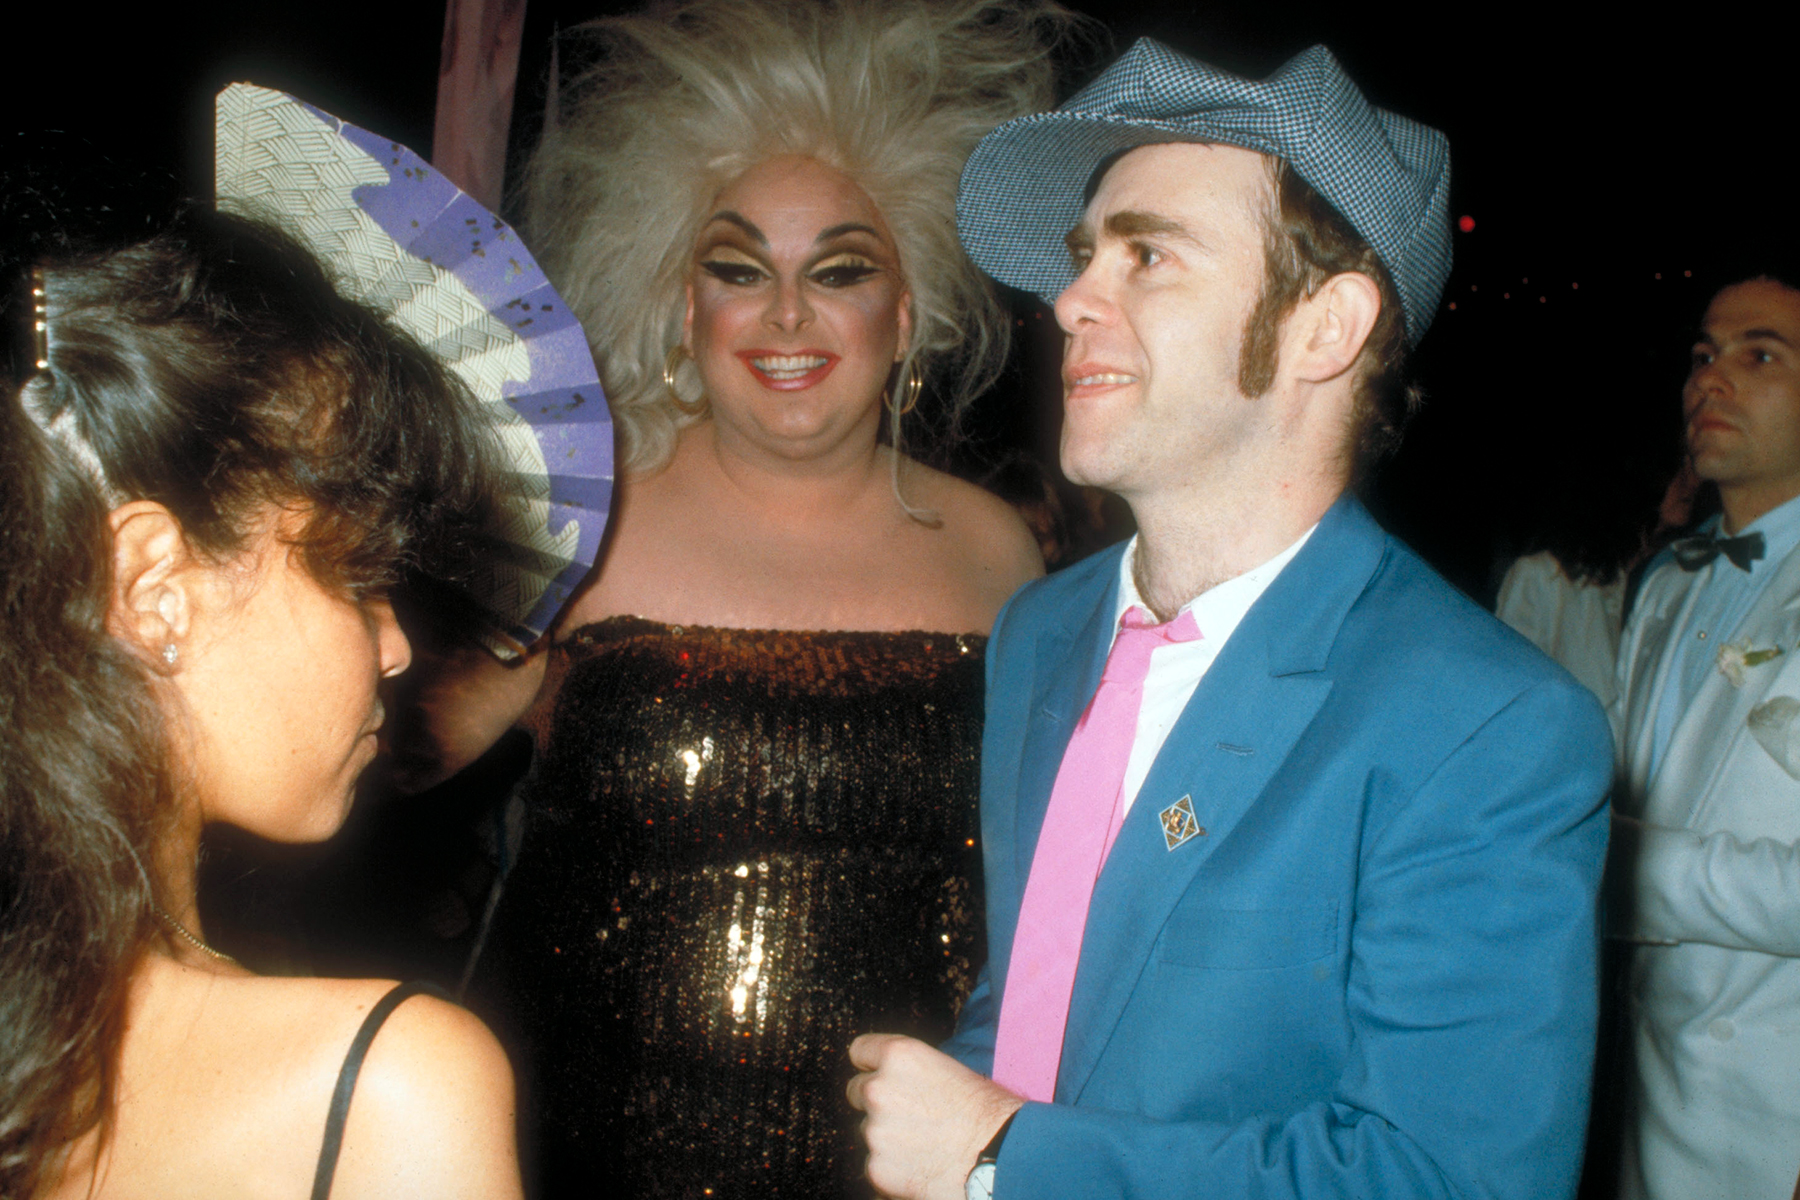 Singer Elton John with Divine. (Photo by Robin Platzer/The LIFE Images Collection via Getty Images/Getty Images)